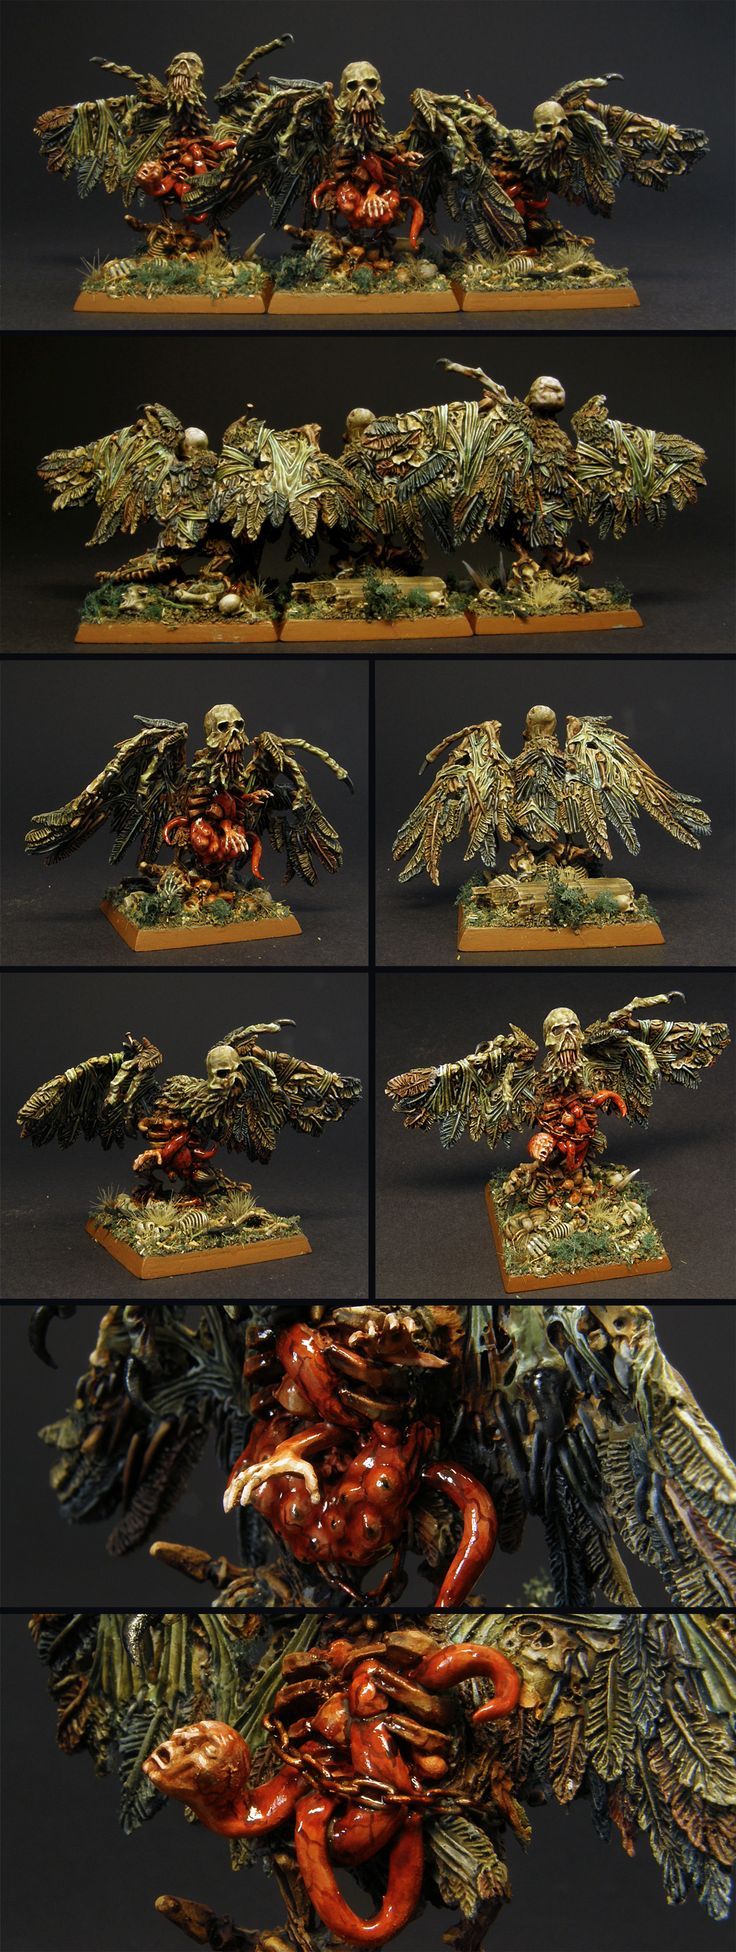 Heavily converted Carrions - painted for Vampire Counts, Warhammer Fantasy Battle - but can work for Age of Sigmar if need be. Original minis belonged to the discontinued Tomb Kings range - they got turned into crazy flying horrors with parts of them inspired by the movie The Thing - or Sarkicism from SCP universe